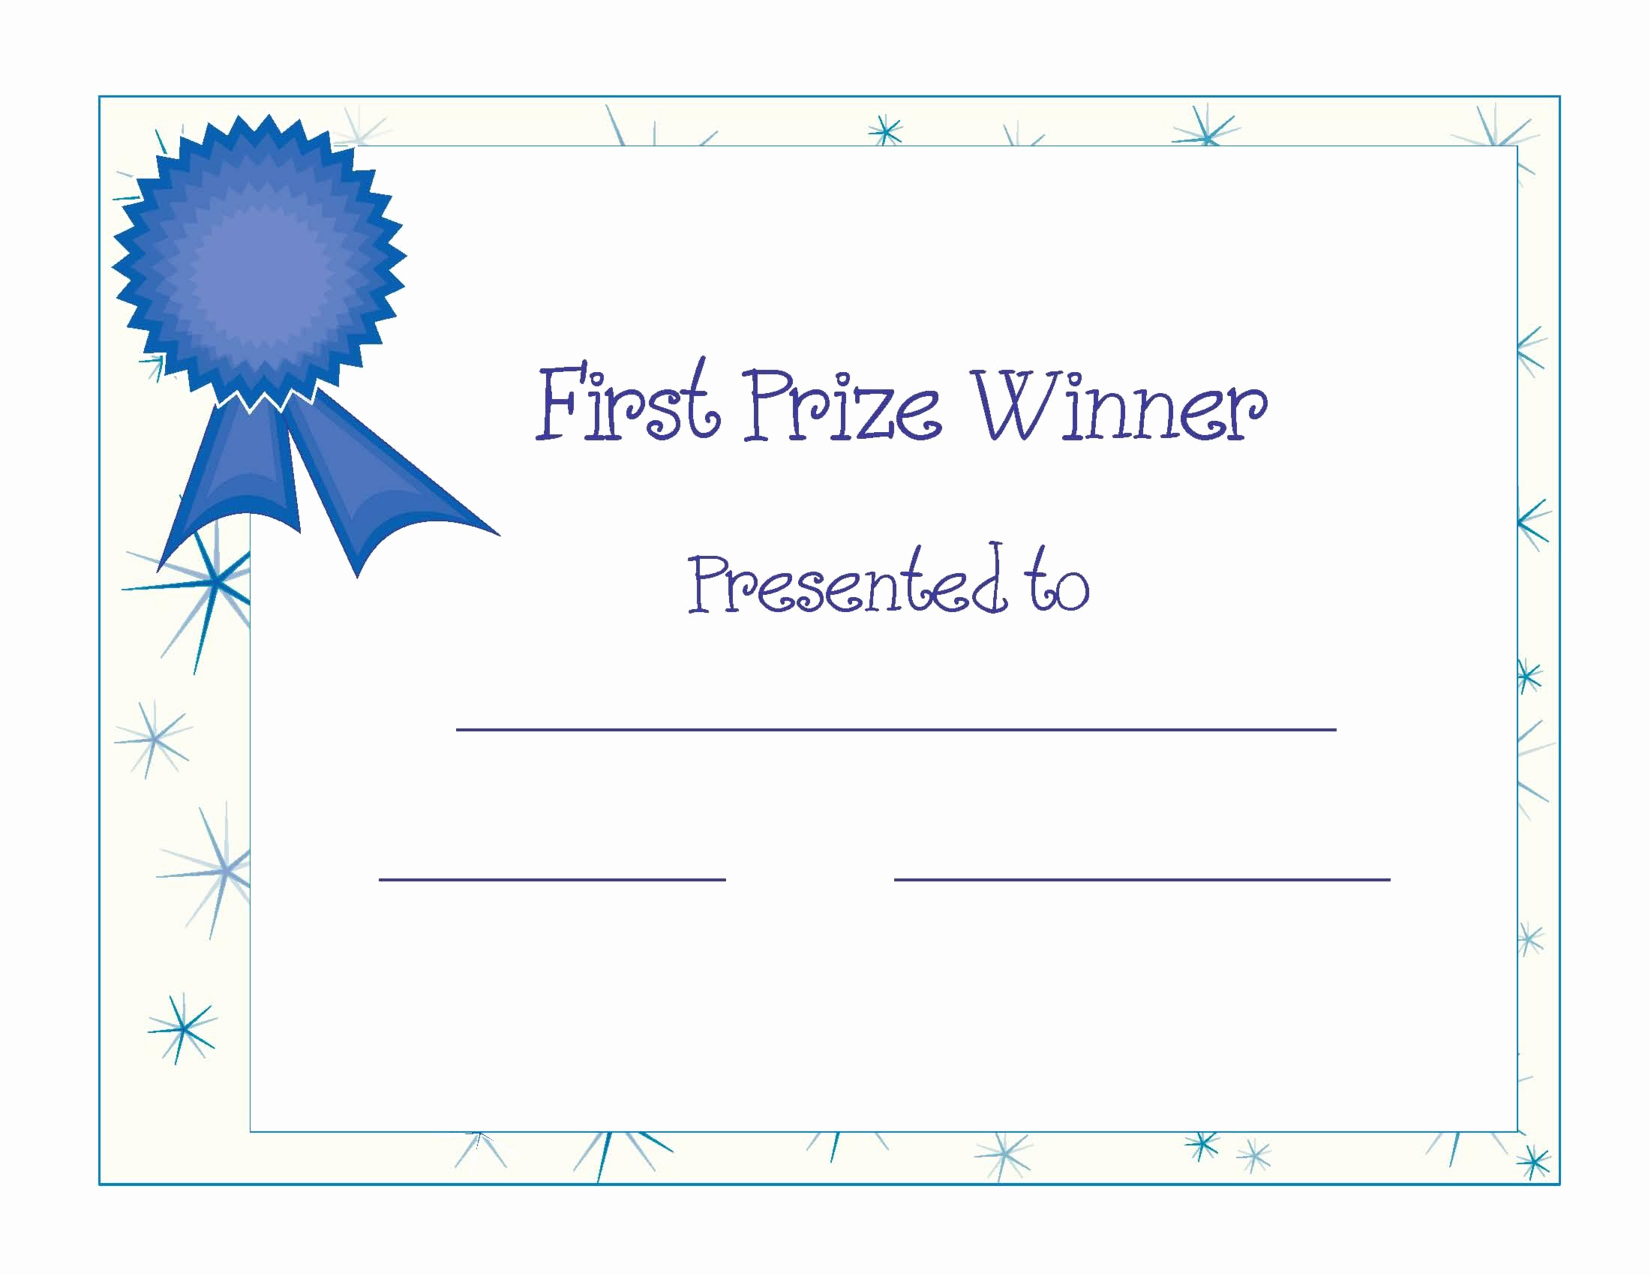 Free Downloadable Award Certificate Templates Awesome Blank Award Templates Portablegasgrillweber